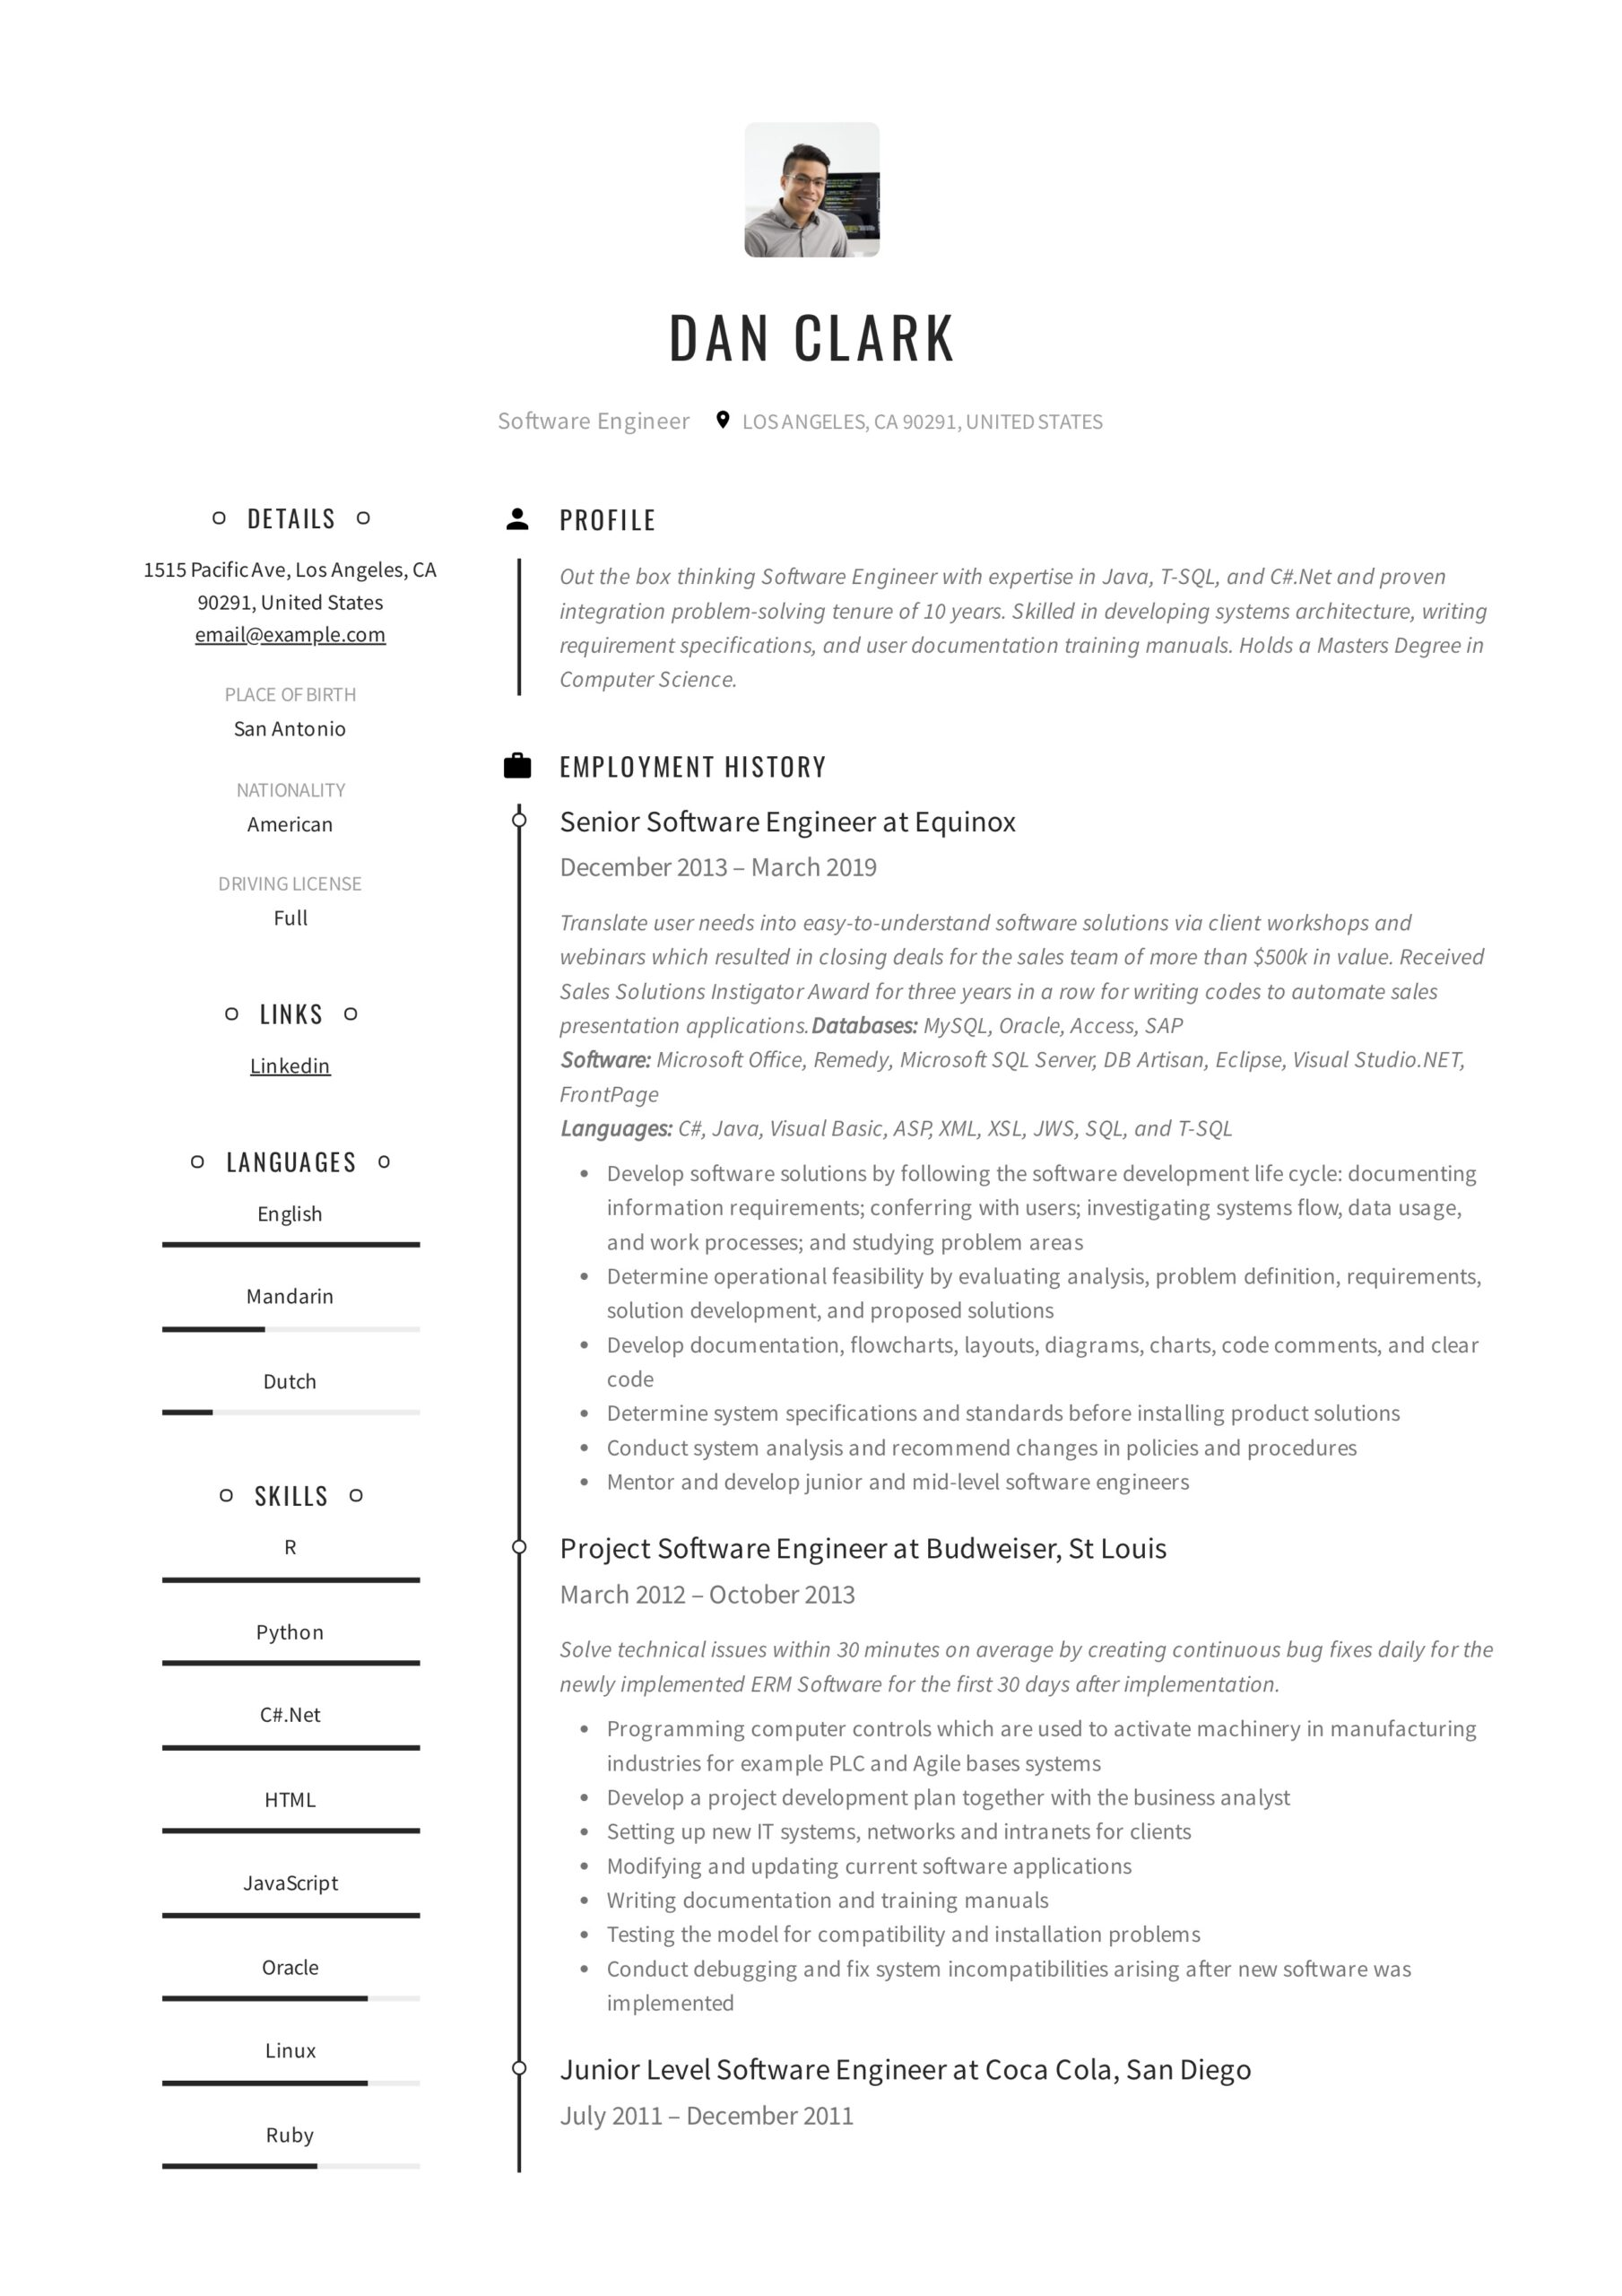 resume templates pdf word free downloads and guides format dan software engineer python Resume Resume Format Download Pdf